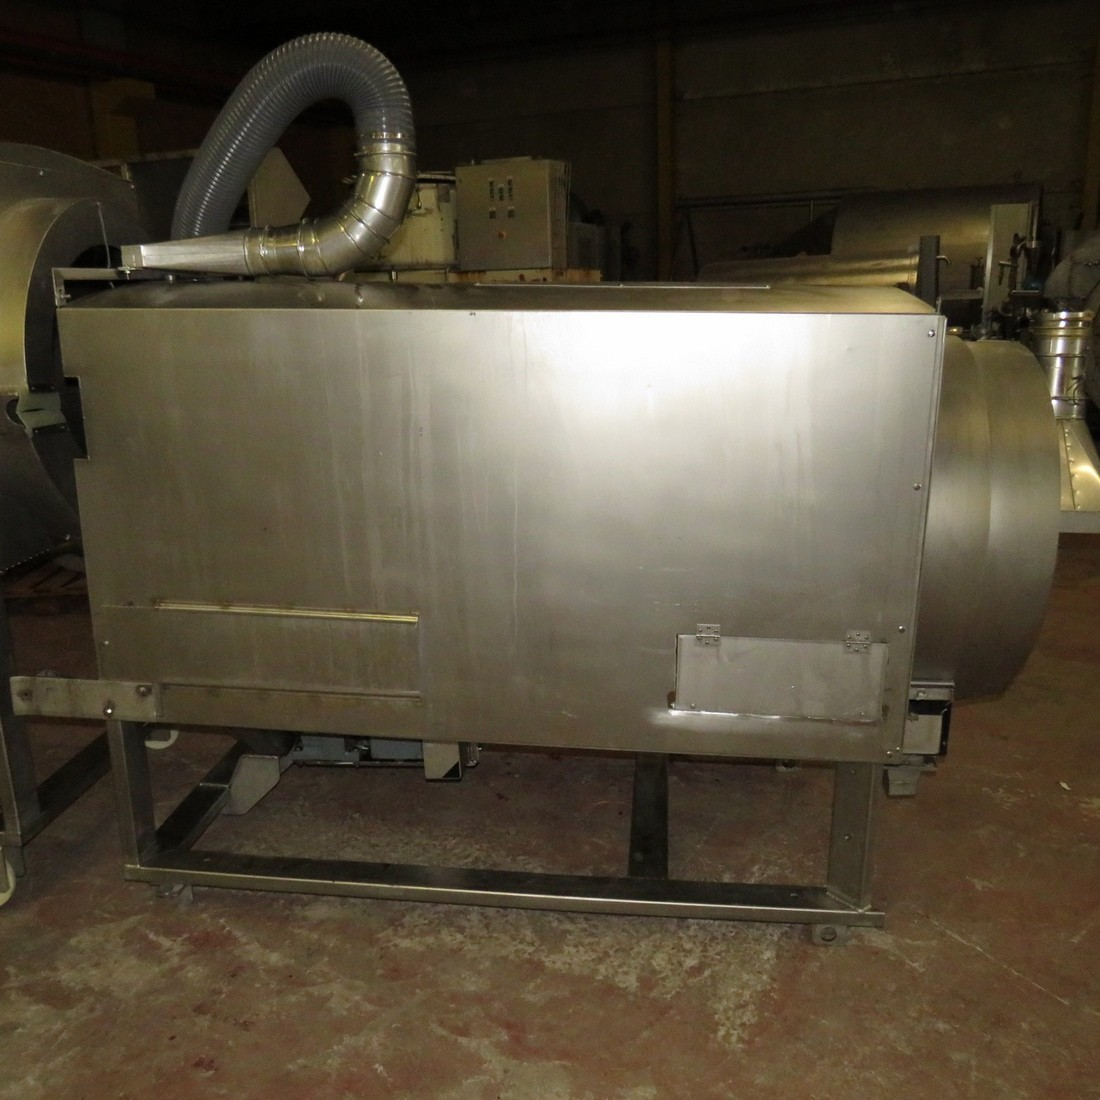 R6ME6394 Stainless steel mixer / Coater cascading